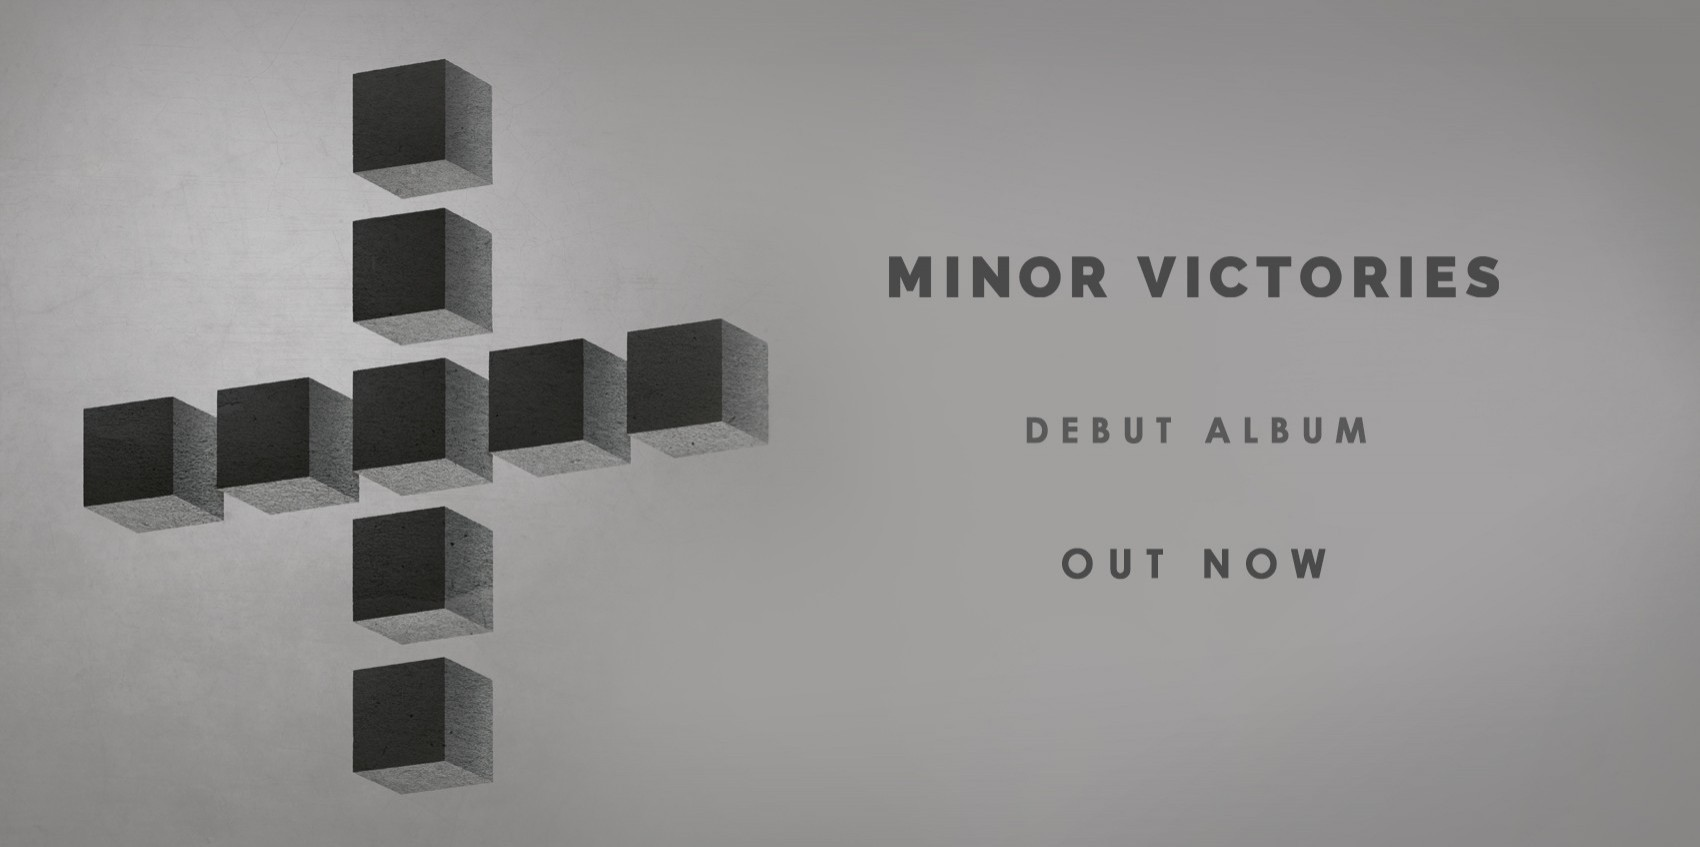 \'MINOR VICTORIES\' IS OUT NOW